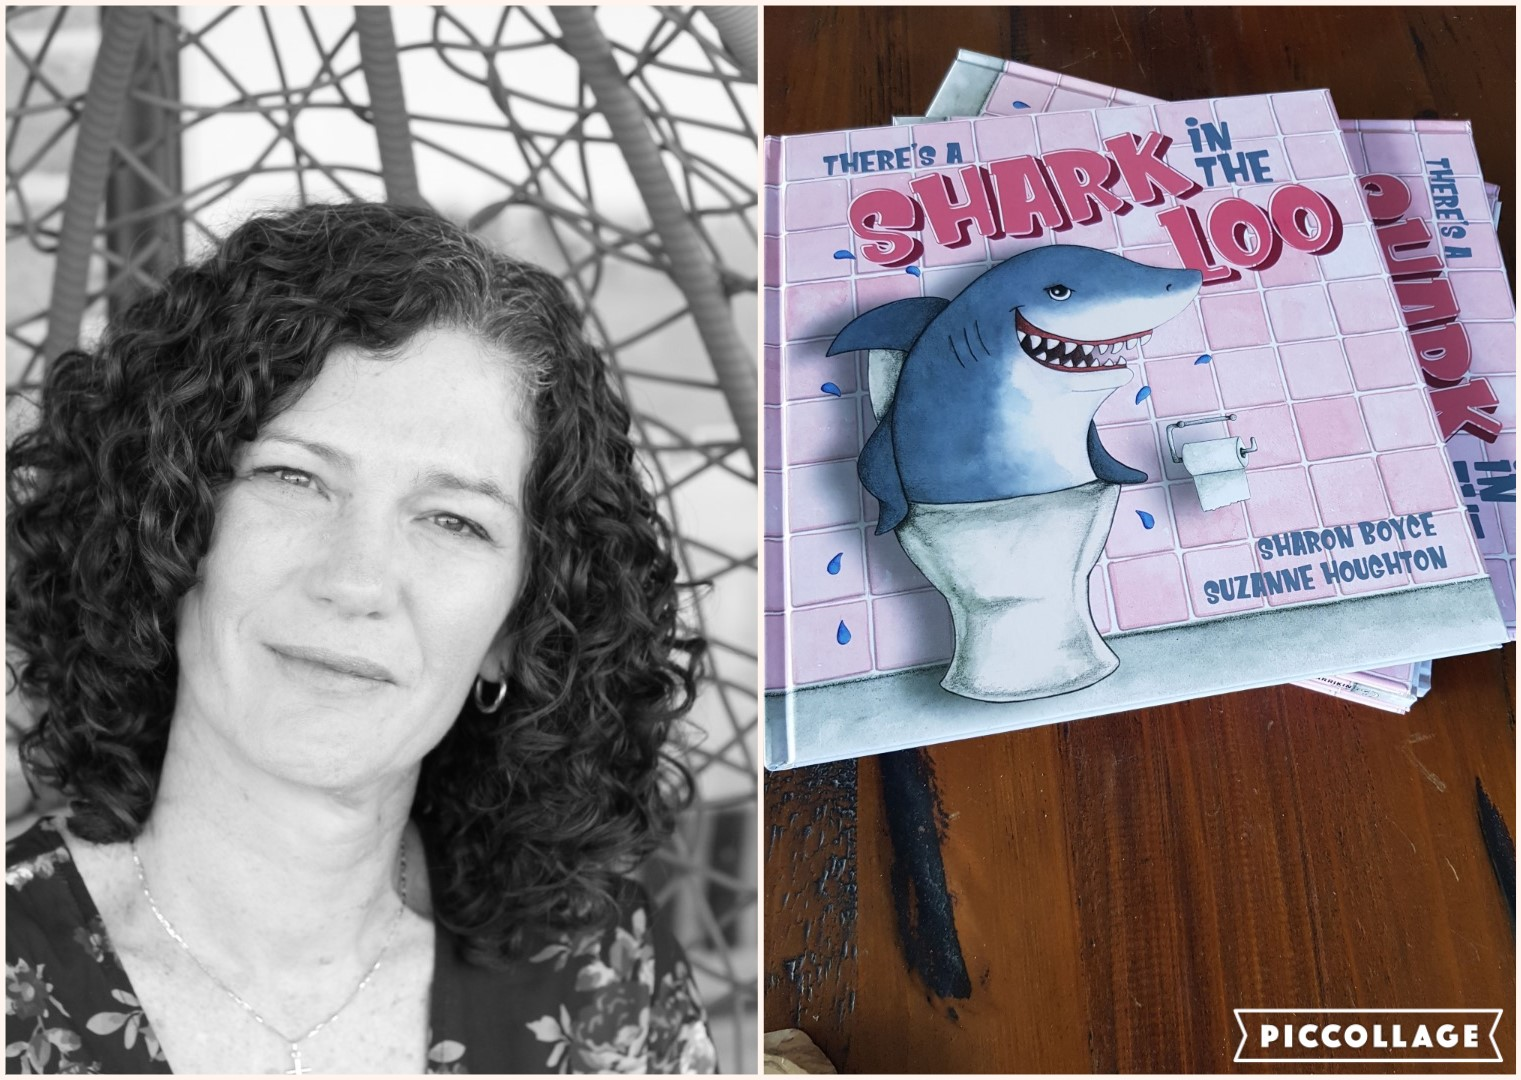 Sharon Boyce There's a Shark in the Loo